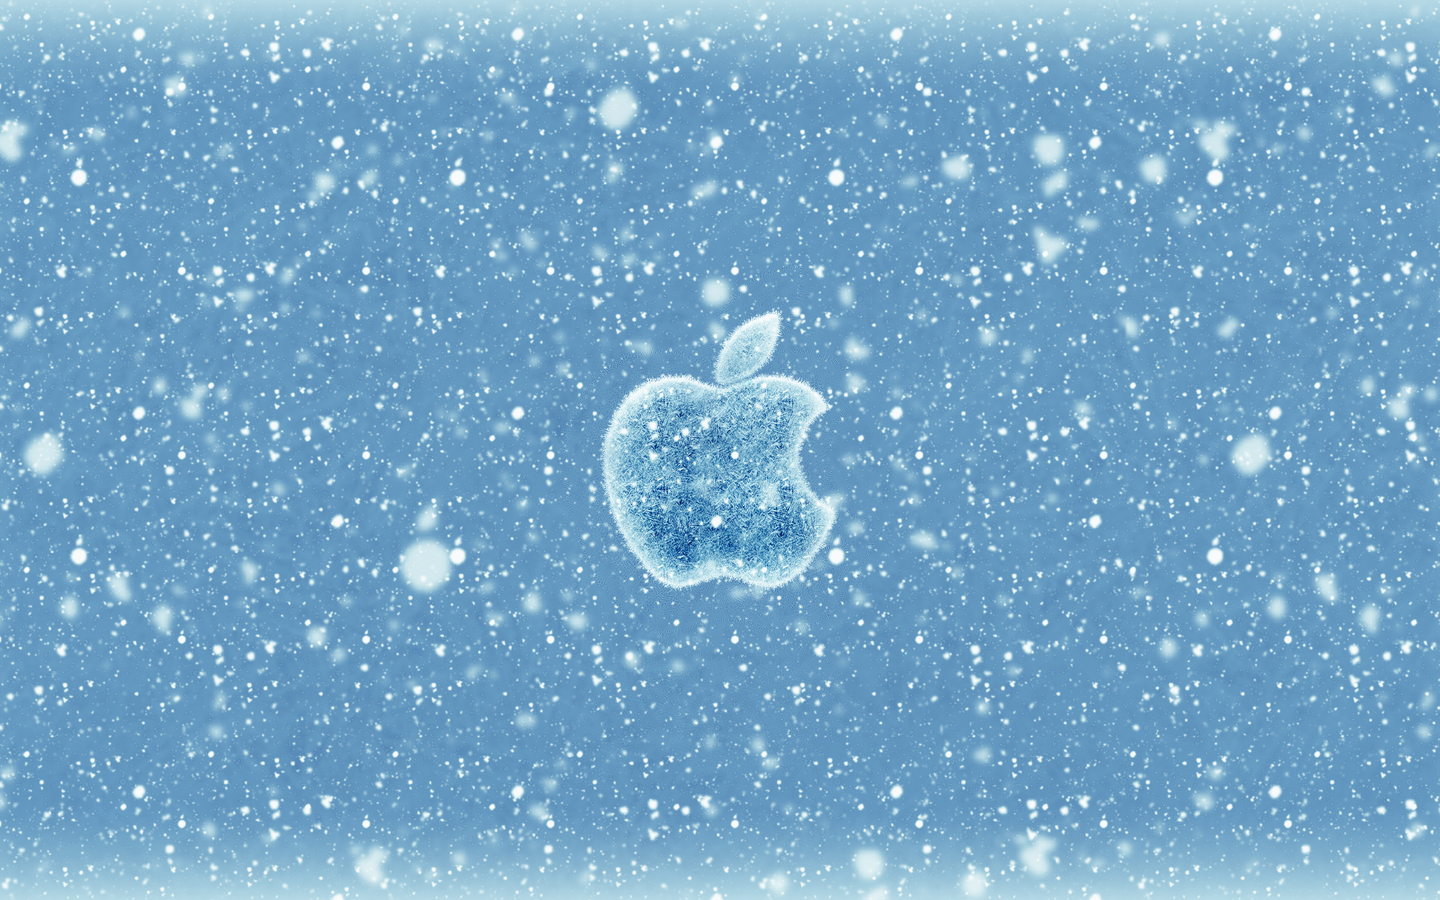 apple-christmas-winter-logo-4k-qf.jpg